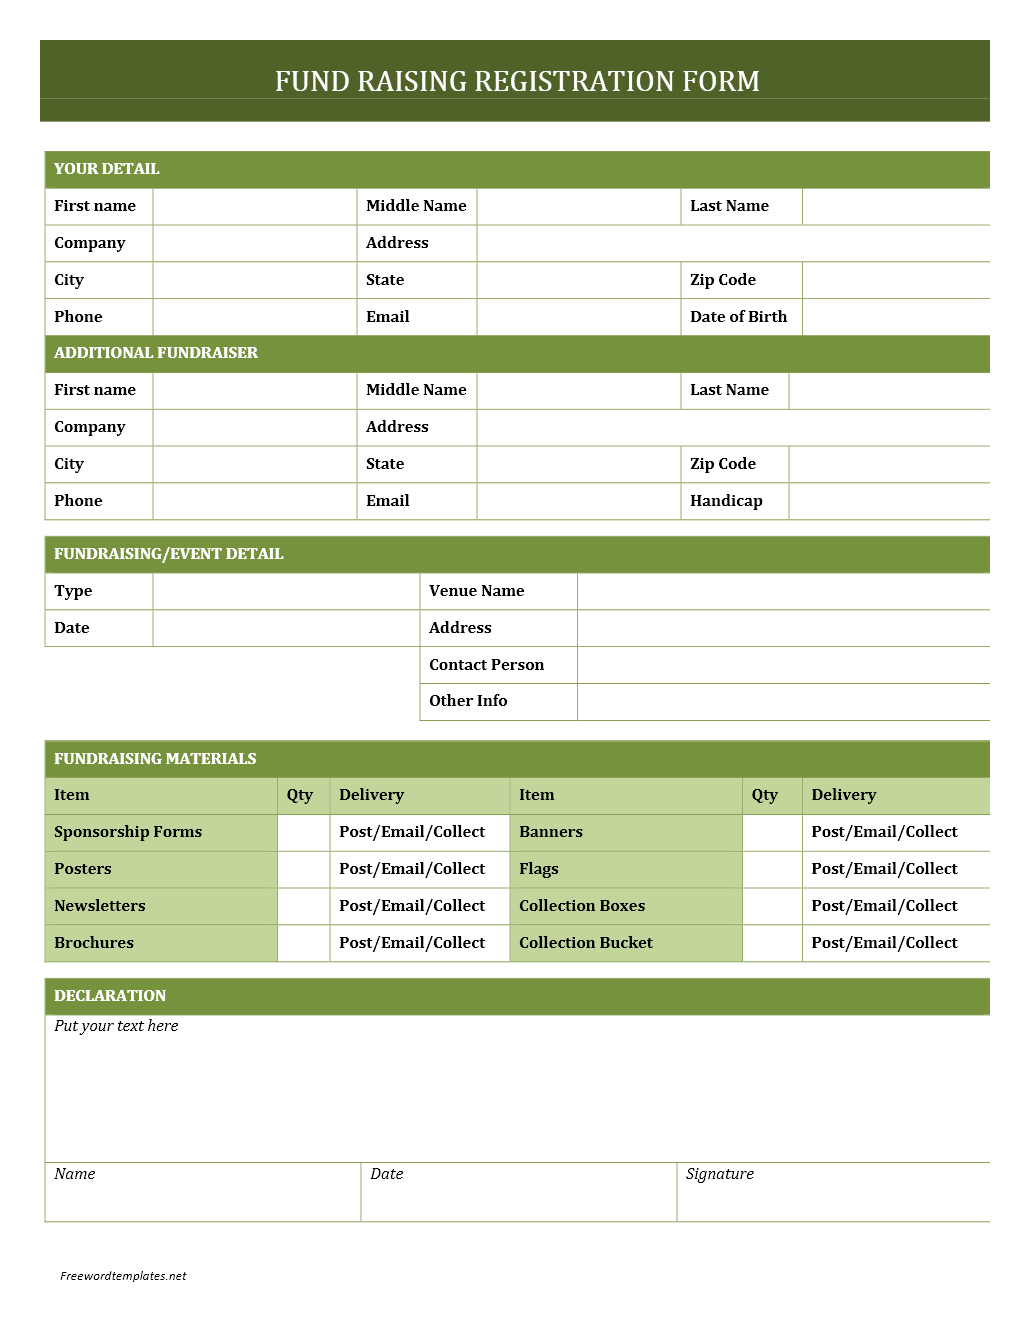 Fundraising Registration Form Template  Fundraising Form Template